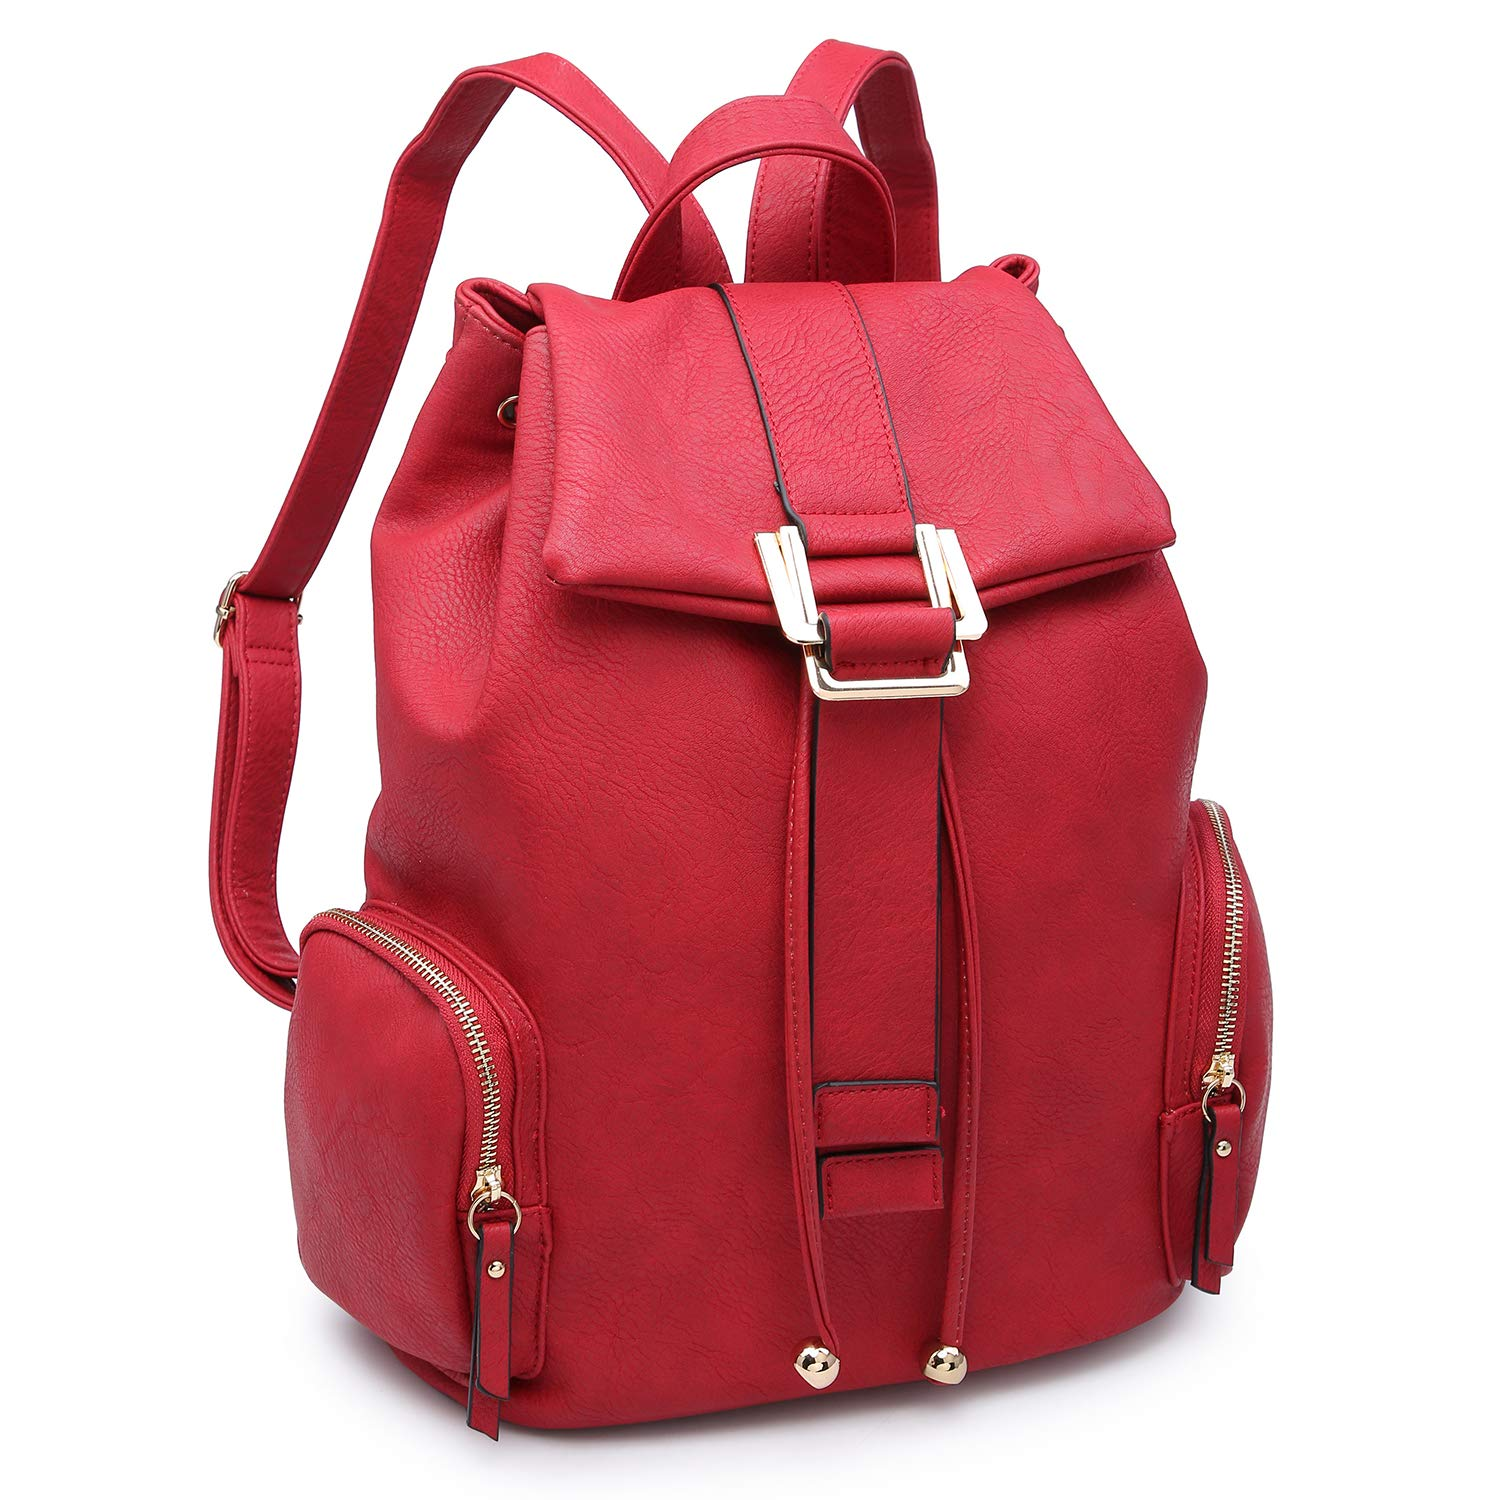 Red Women Fashion Backpack Purse PU Leather Rucksack Casual Travel School Backpack w Drawstring Snap Closure